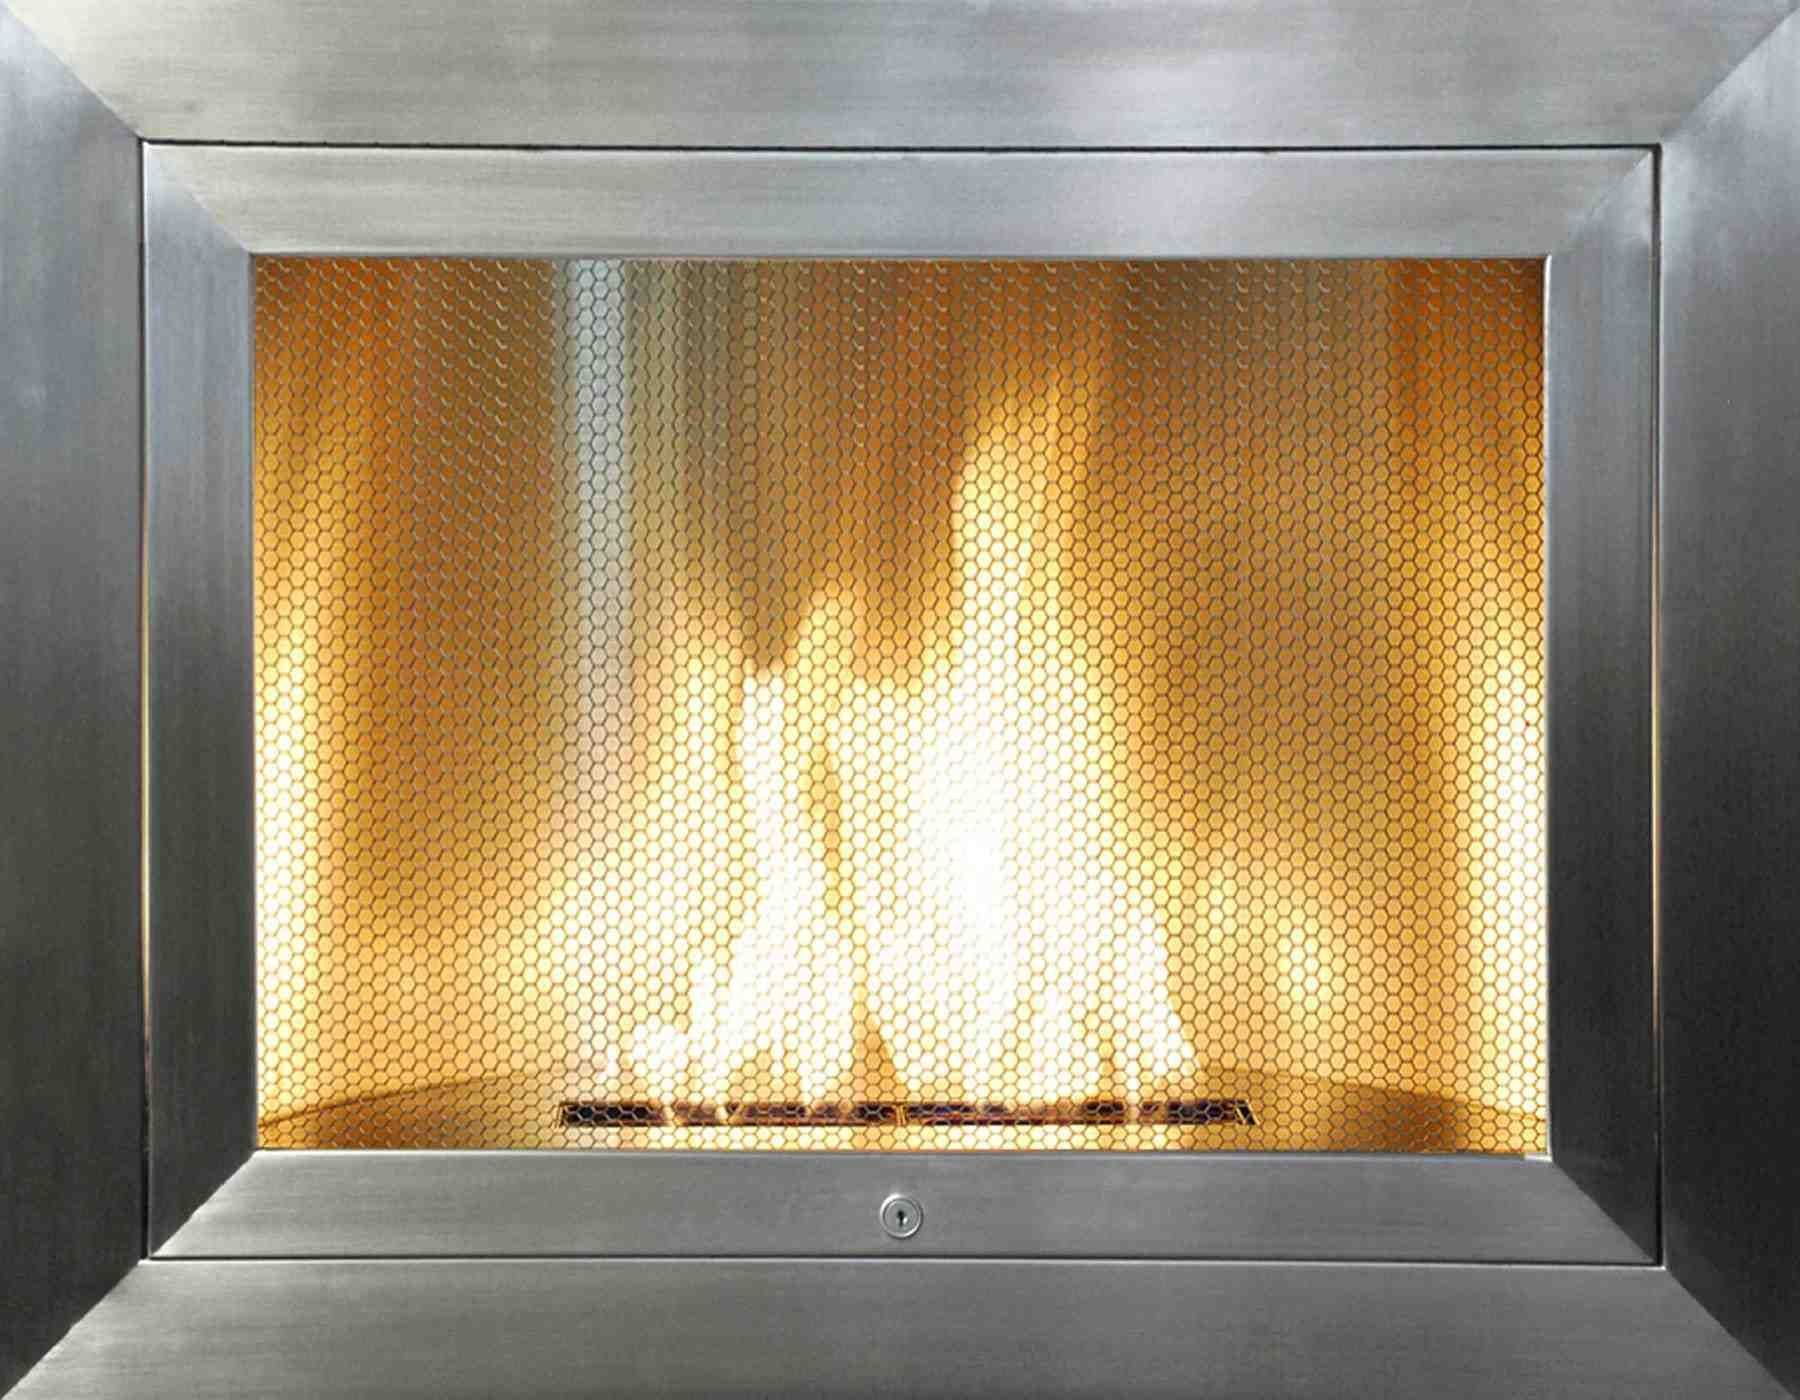 Hearth Cabinet Fireplaces: Products | Custom Built Fireplace New ...